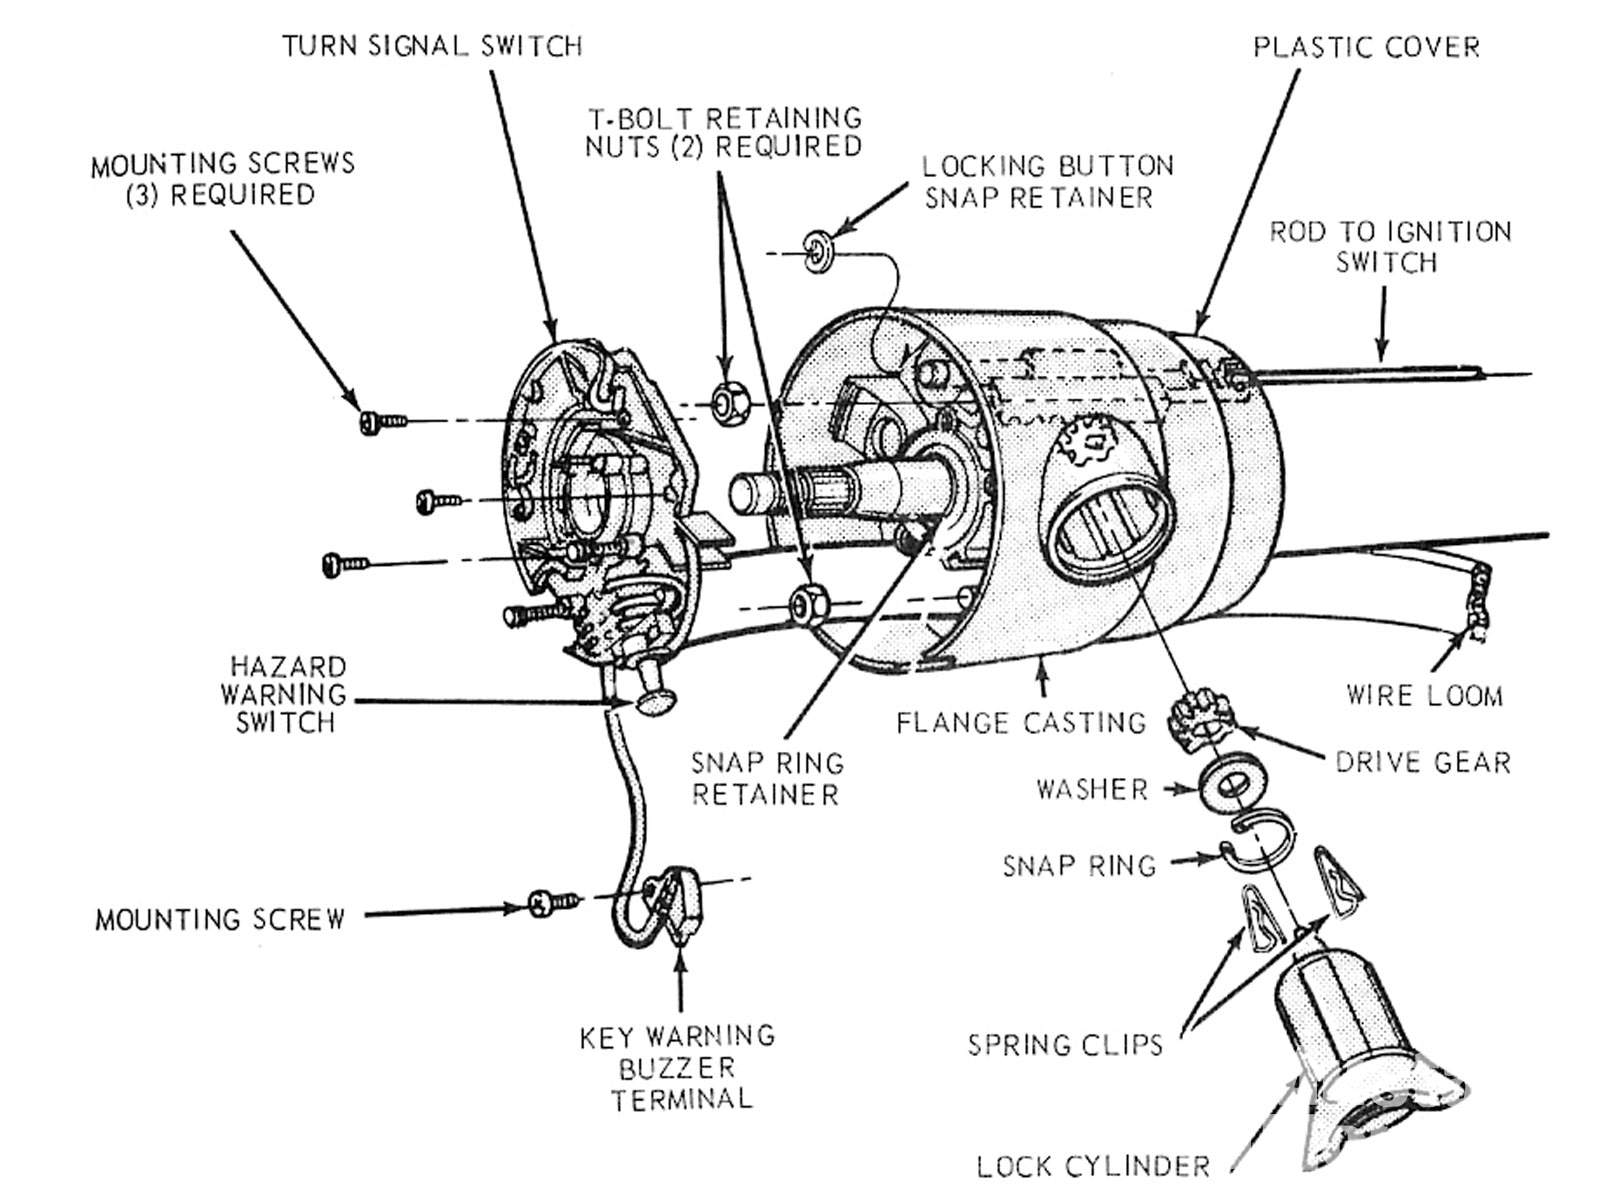 mump 1012 03 ford mustang locking steering columns locking steering column diagram [ 1600 x 1200 Pixel ]